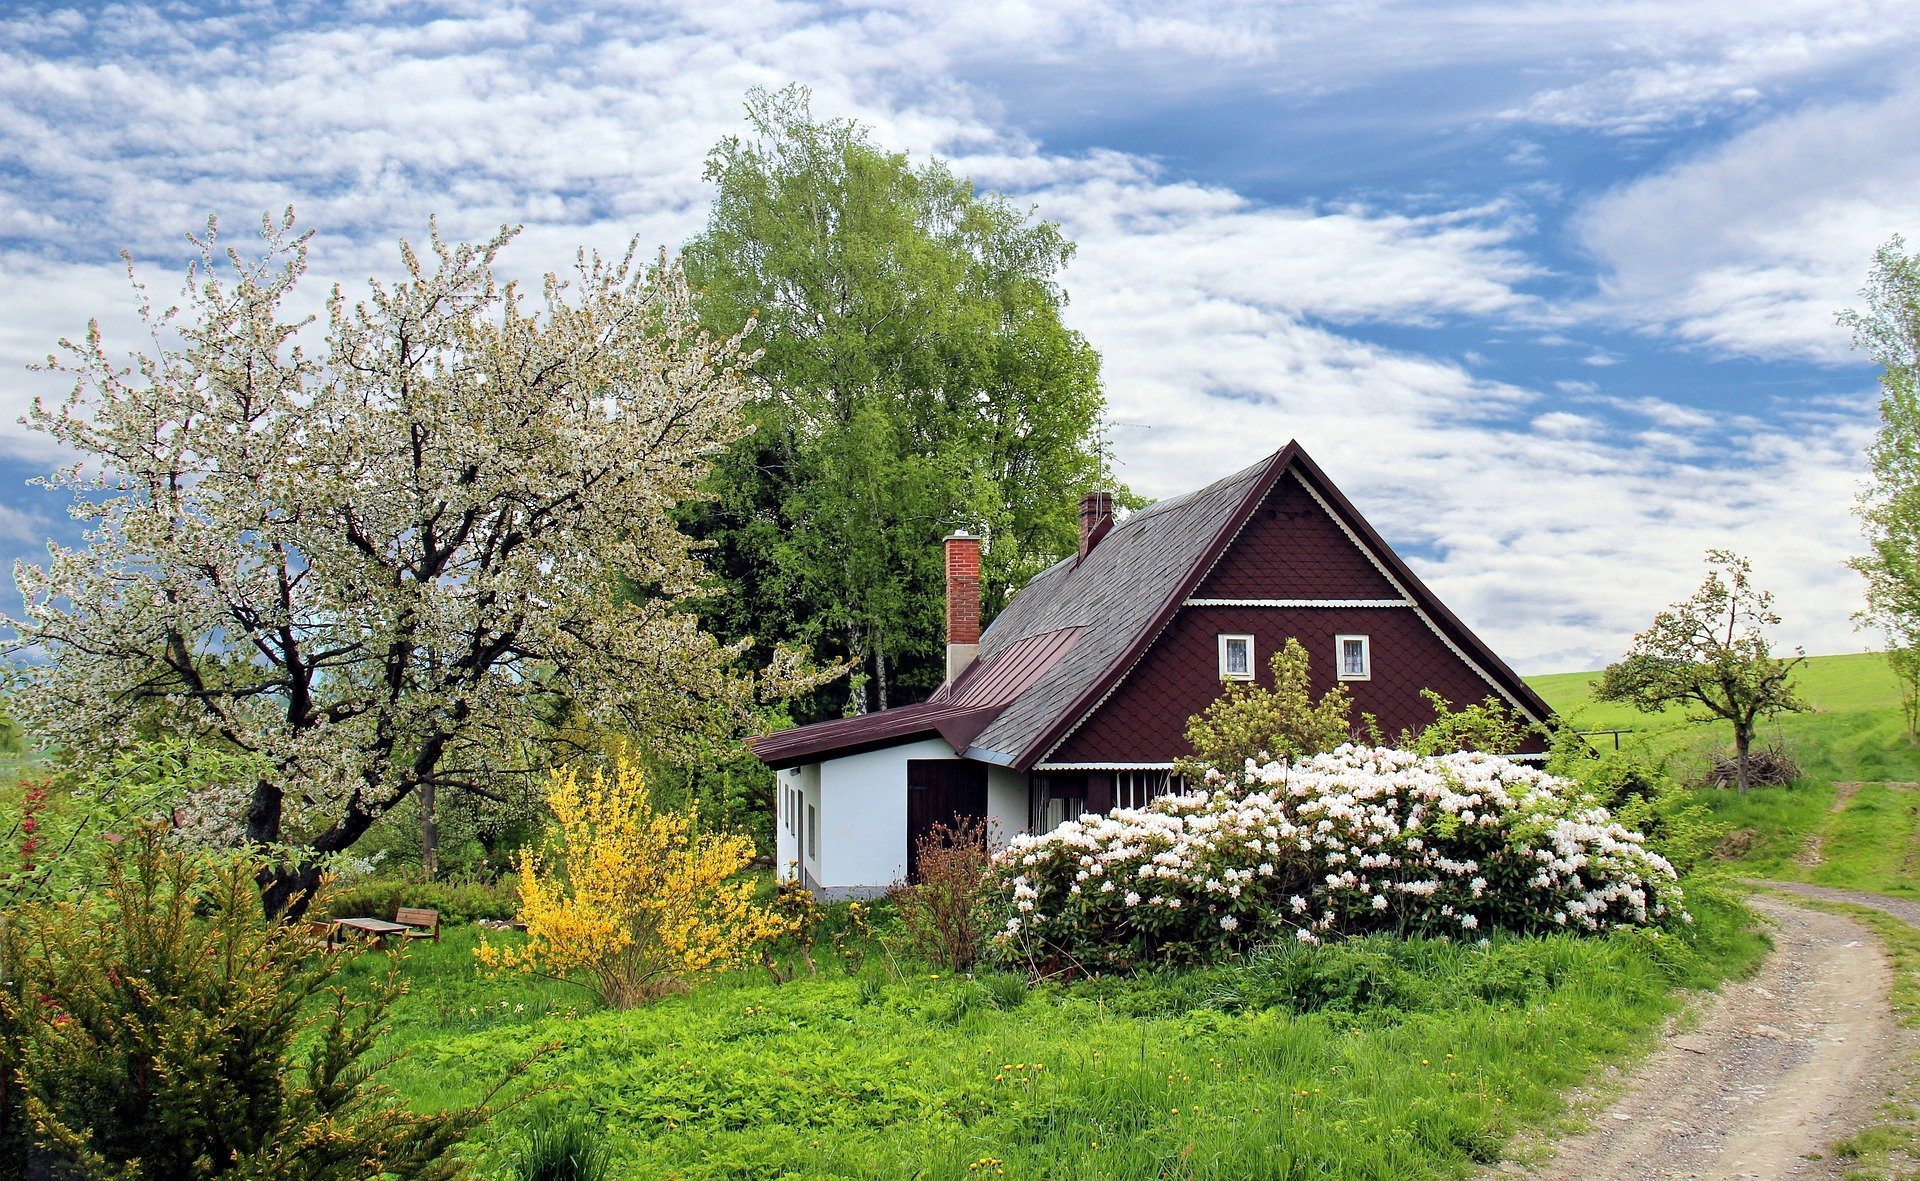 The ABCs Of Becoming A Homeowner Out In The Country